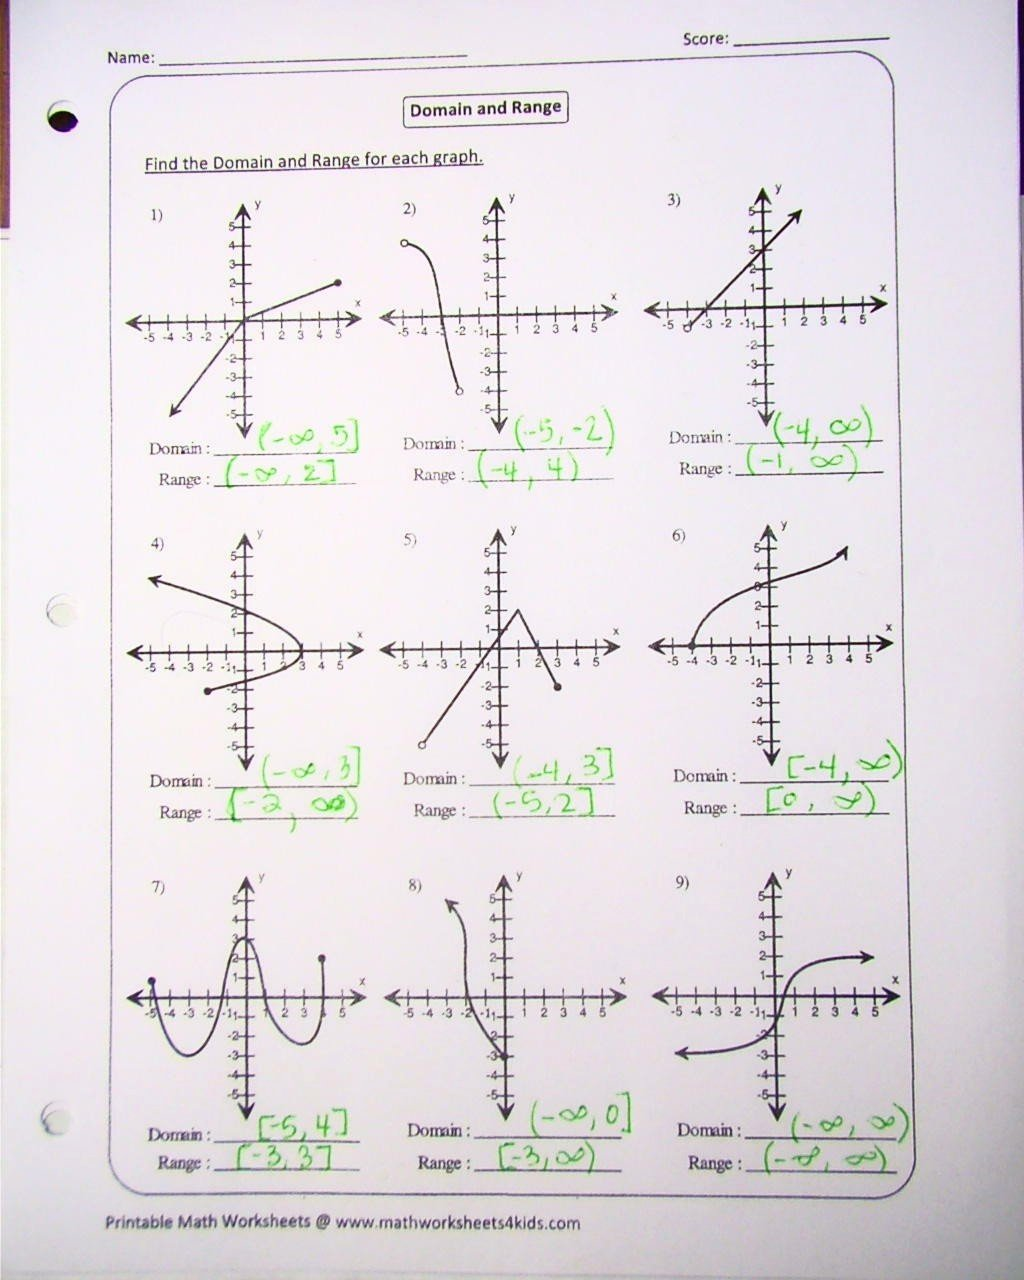 Domain and Range Of Graphs Worksheet Answers New Honors Precalc